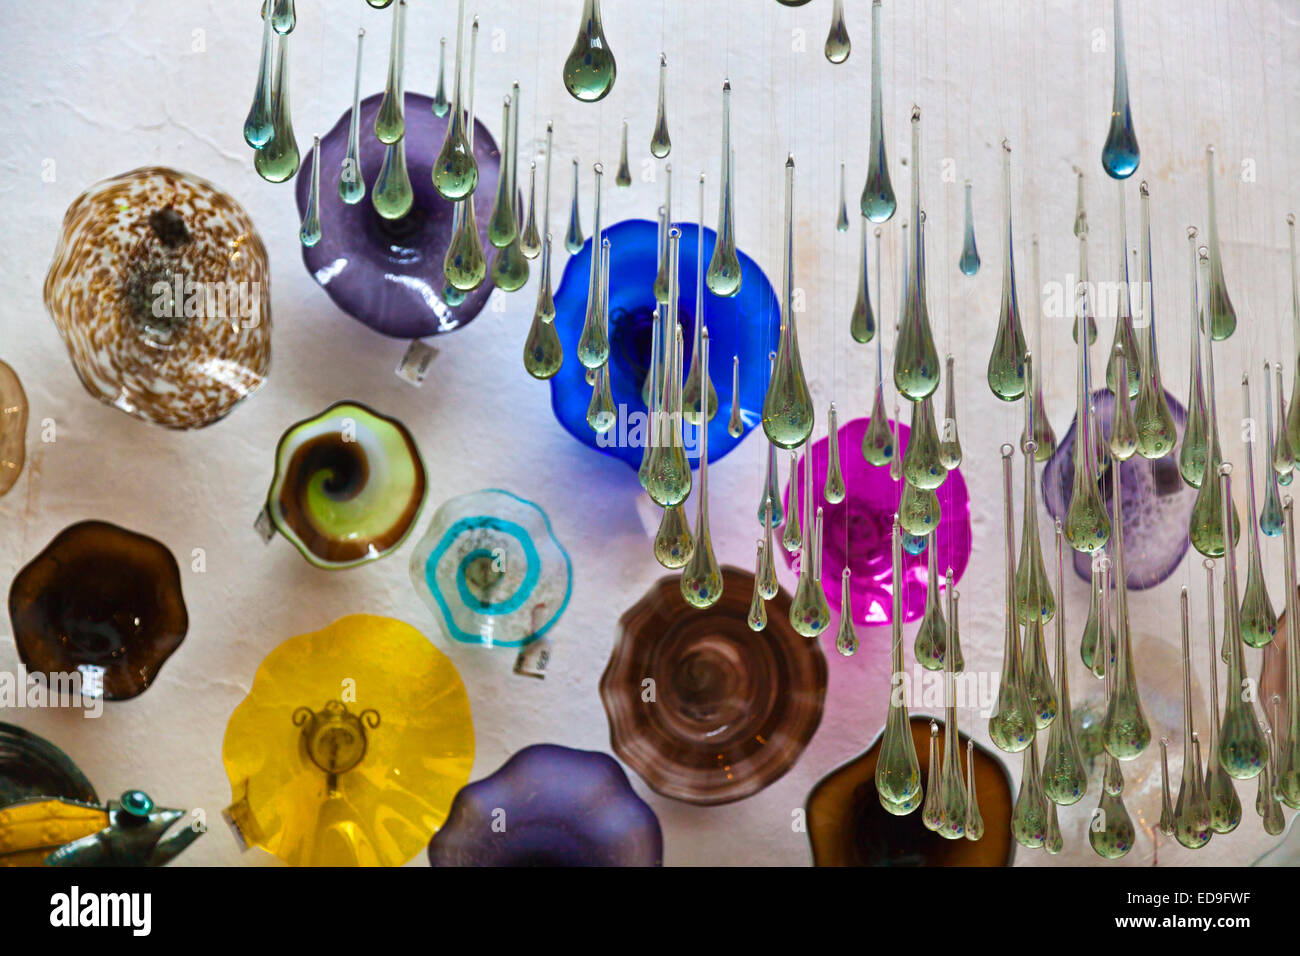 Picture of: Hand Blown Glass Ornament In A Shop San Miguel De Allende Mexico Stock Photo Alamy